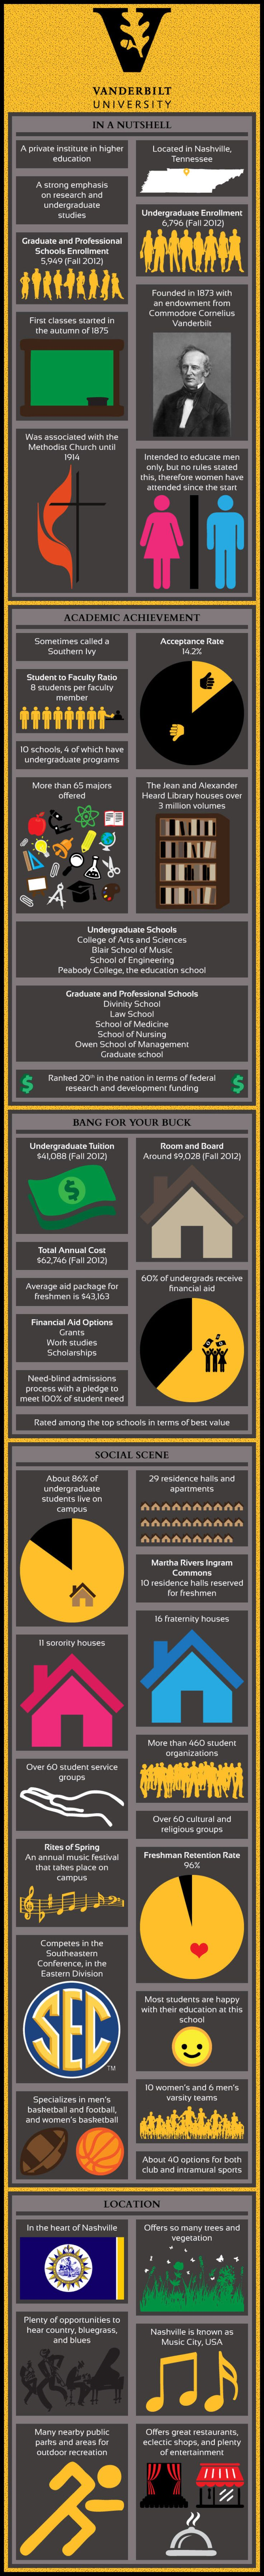 Vanderbilt University Infographic. Everything is perfect....except the price and acceptance rate. Please Lord, help?